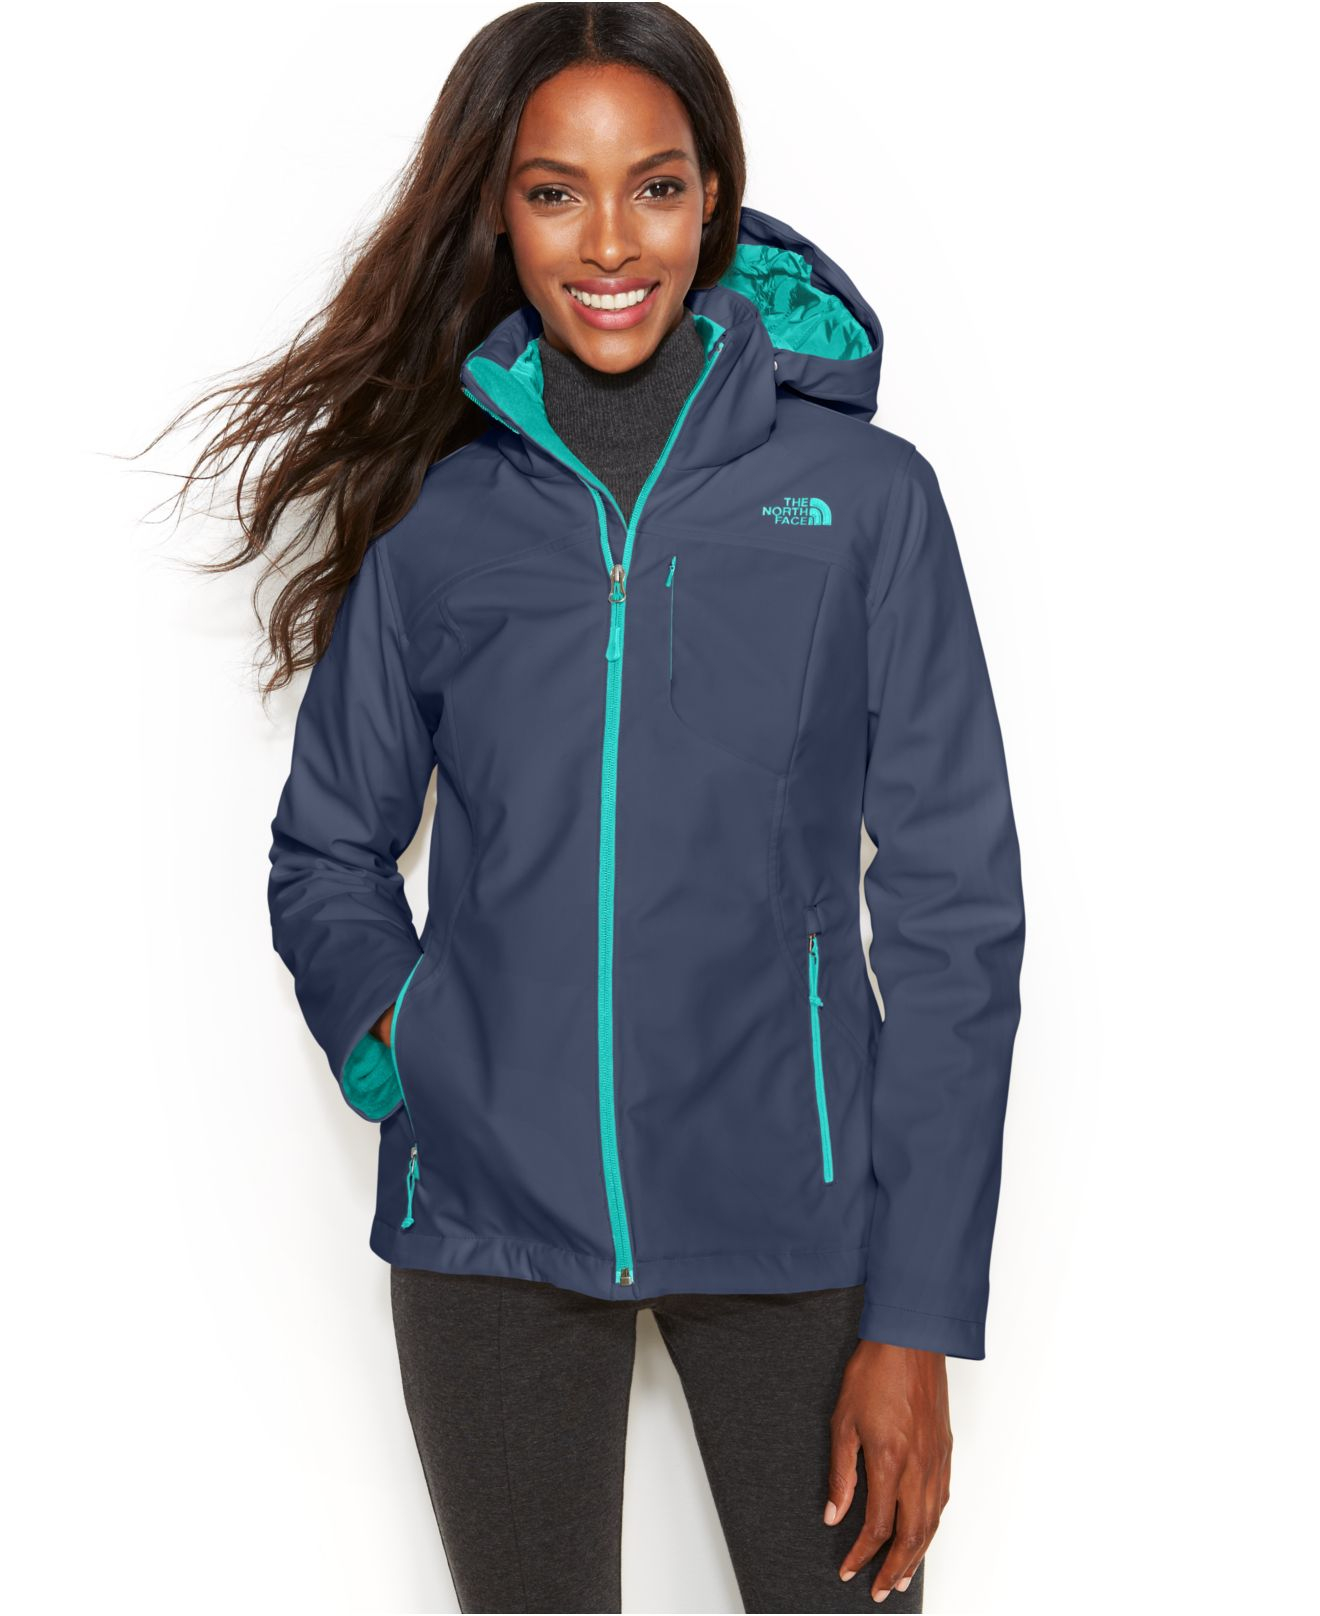 Stone Elevation Zip : Lyst the north face apex elevation zip up jacket in blue